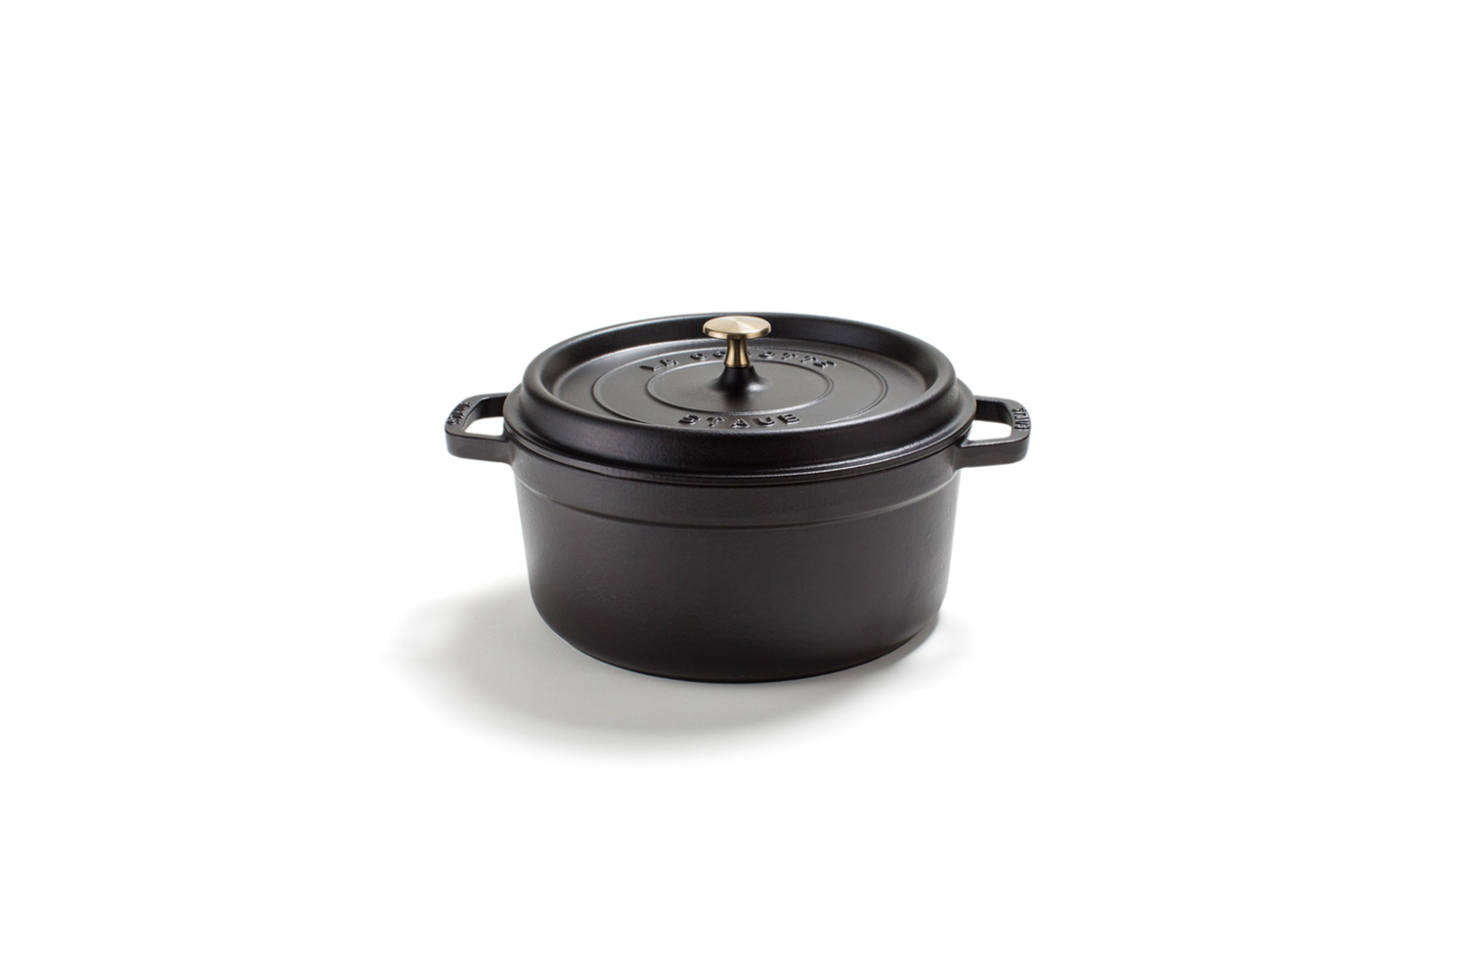 Like rival French brand Le Creuset, Staub has a long history of producing cast iron cooking pots in France. Staub, too, is coated with a glass enamel finish for a non- or less-stick surface that builds over time. Staub pans withstand high-temperature cooking and are naturally non-toxic and lead-free. Shown here is the Staub Cast Iron Black Round Cocotte, available in a range of sizes from $src=